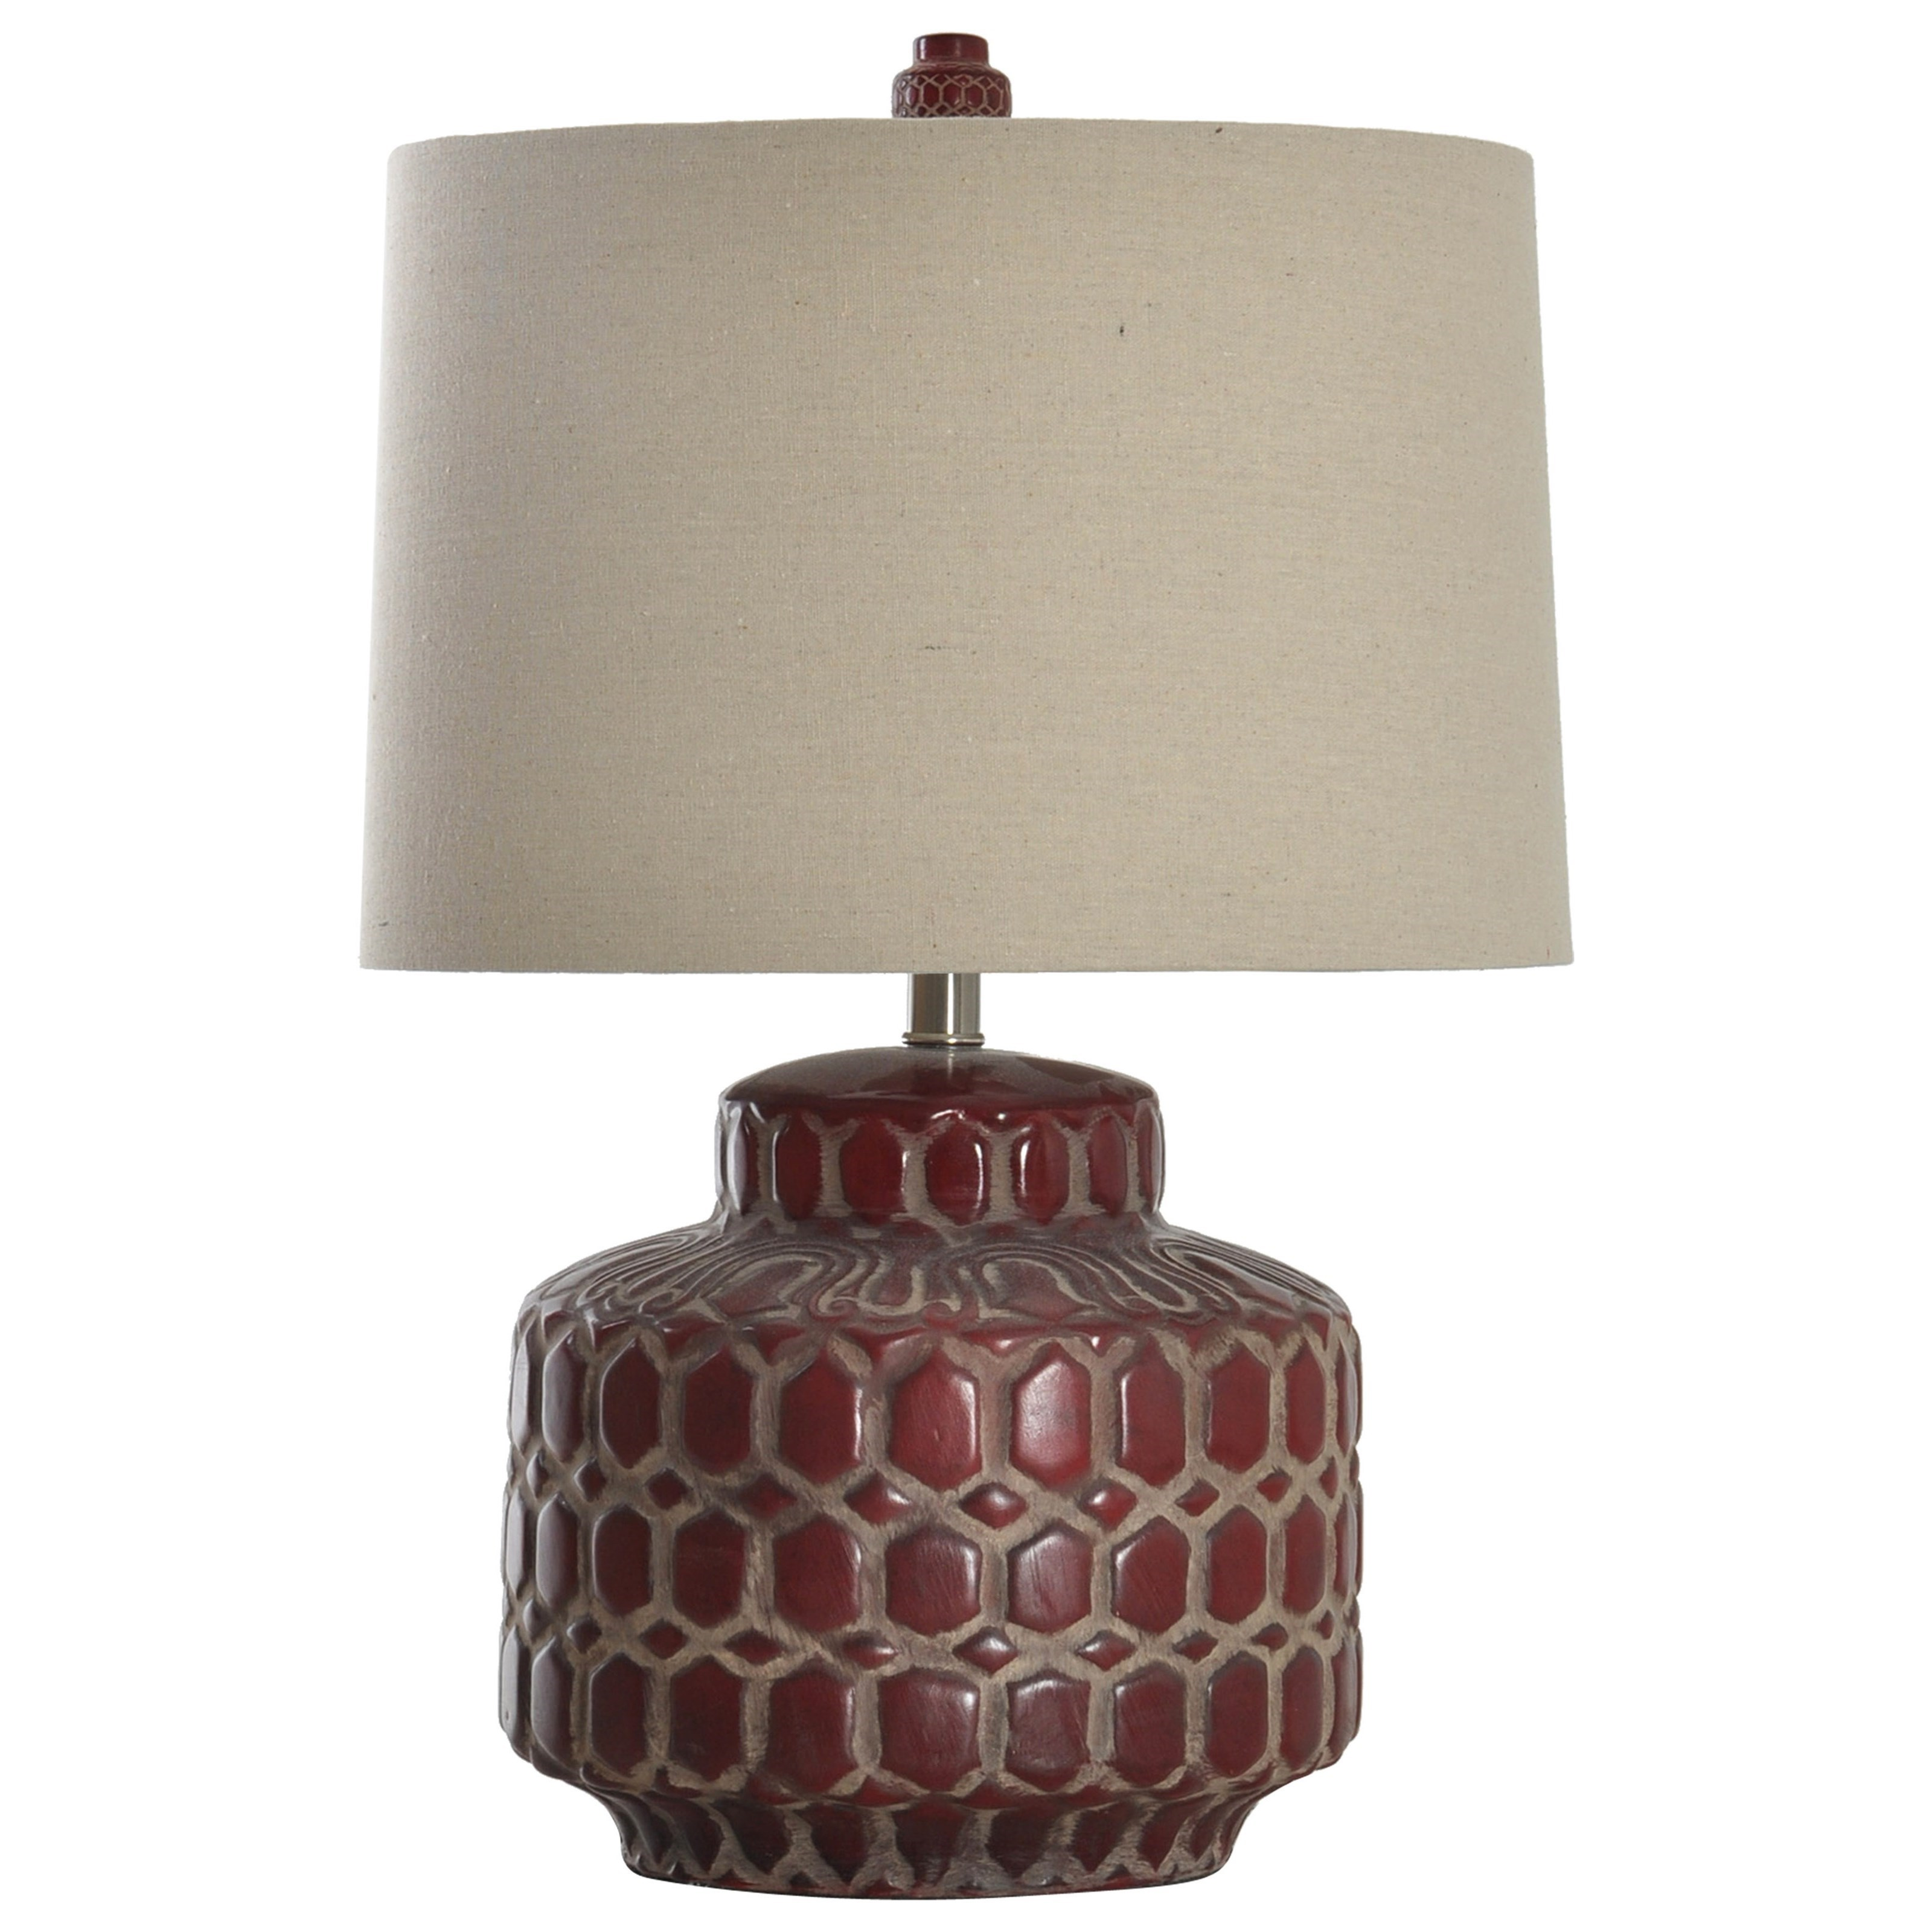 Lamps Ceramic Table Lamp by StyleCraft at Wilcox Furniture